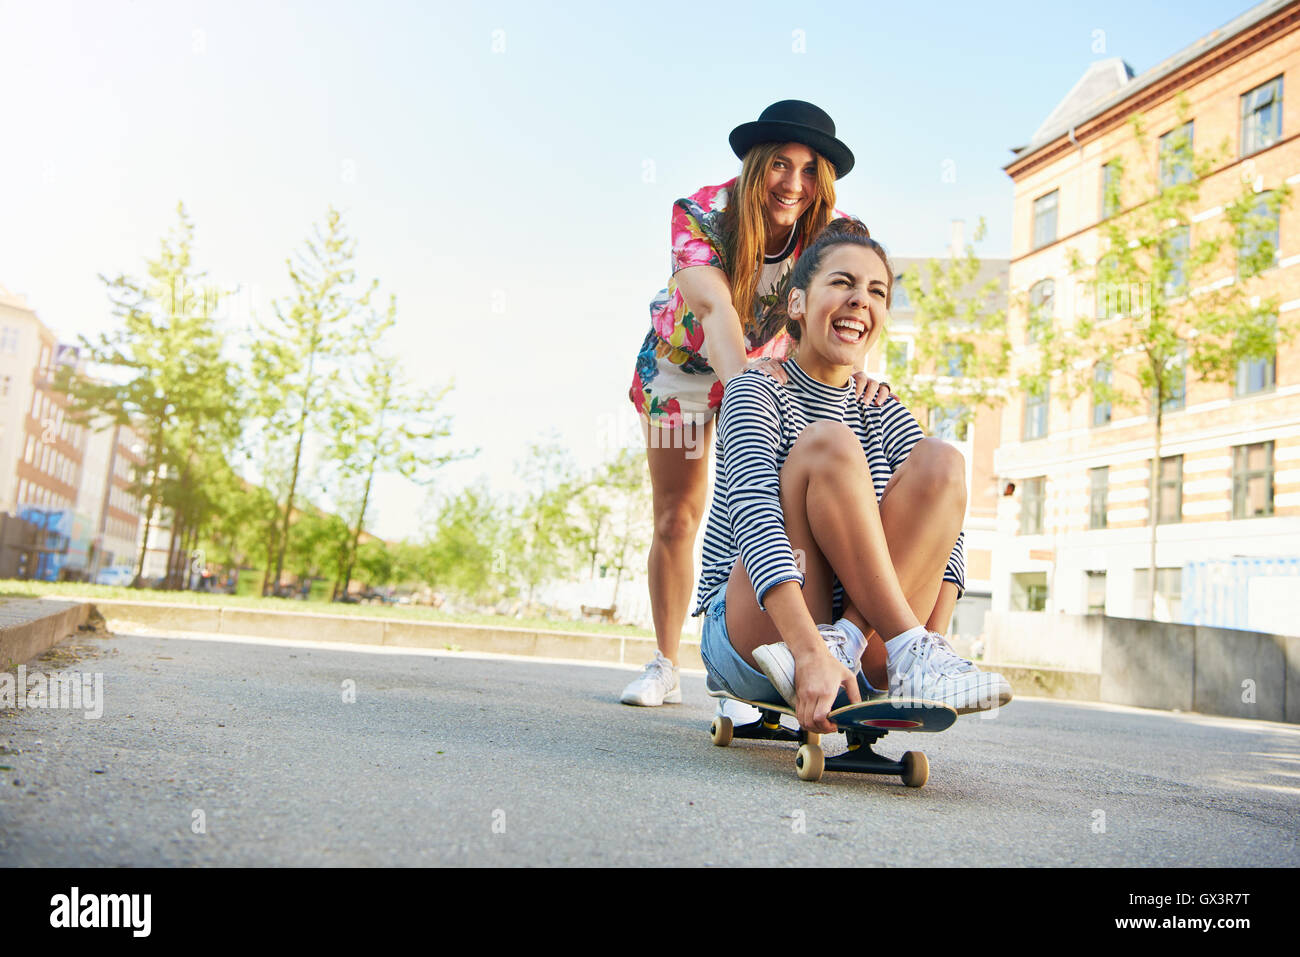 a705f5a7 Happy young woman in tie dye clothing and black hat pushing friend on  skateboard on road